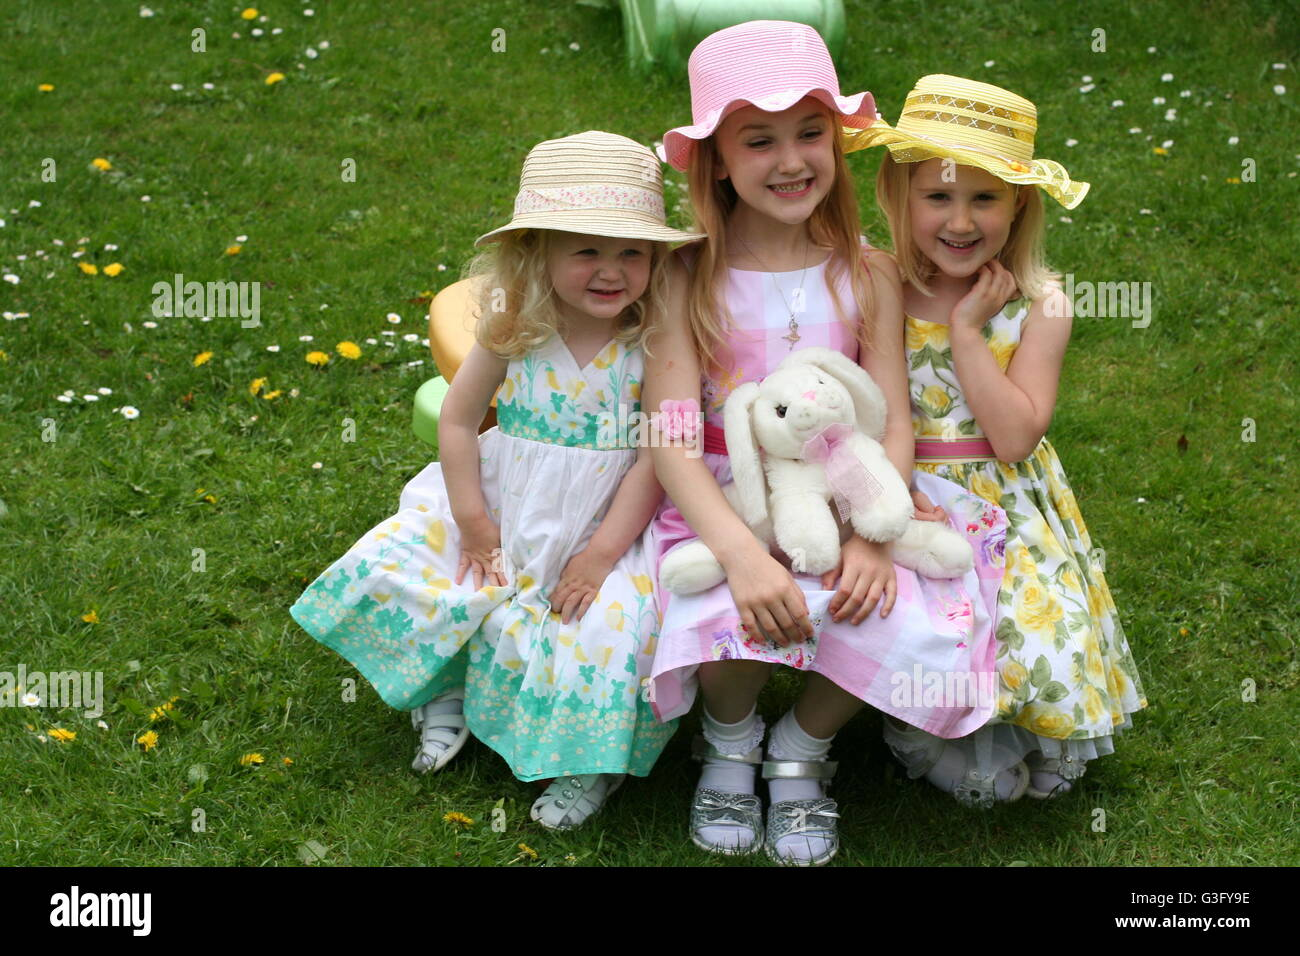 Three sisters, children sitting in the garden at Easter wearing easter dresses and easter bonnets - Stock Image